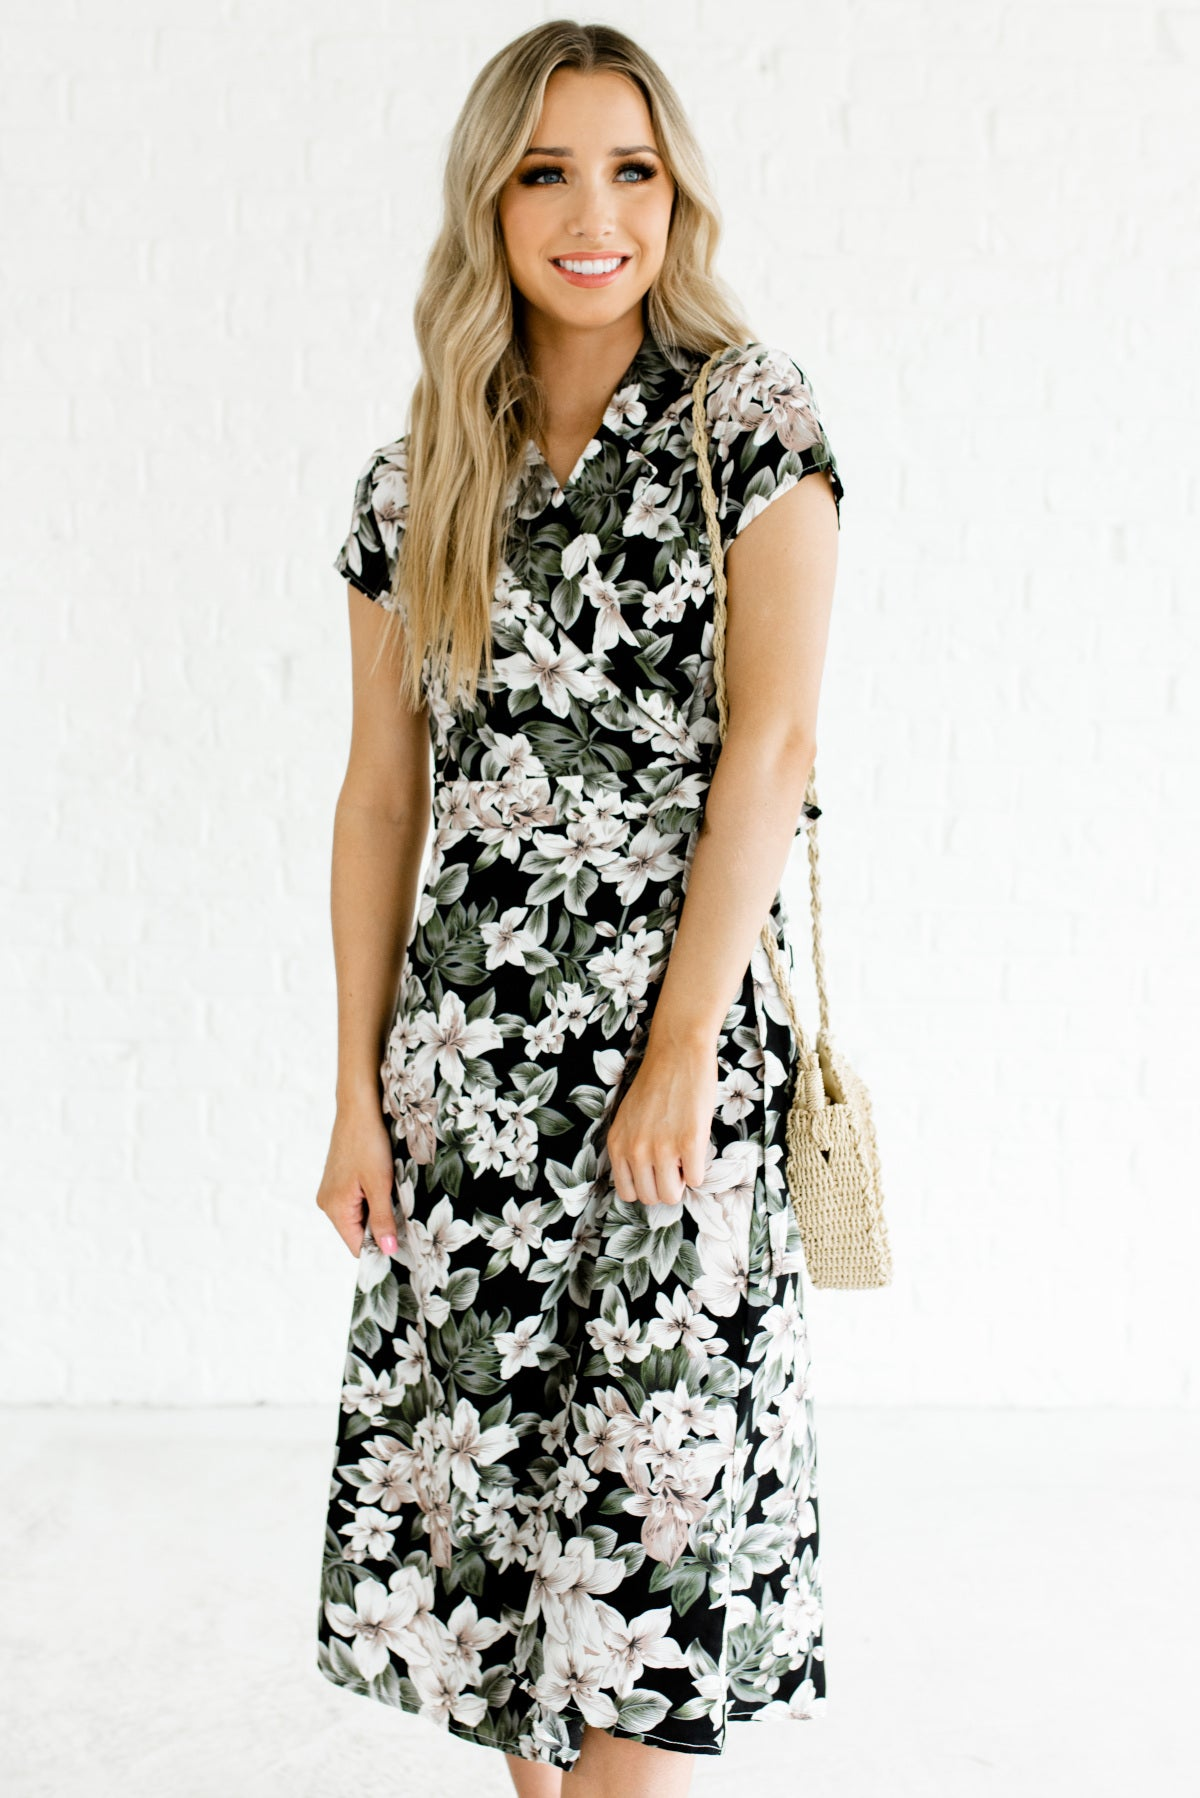 Black Multicolored Floral Patterned Boutique Midi Dresses for Women